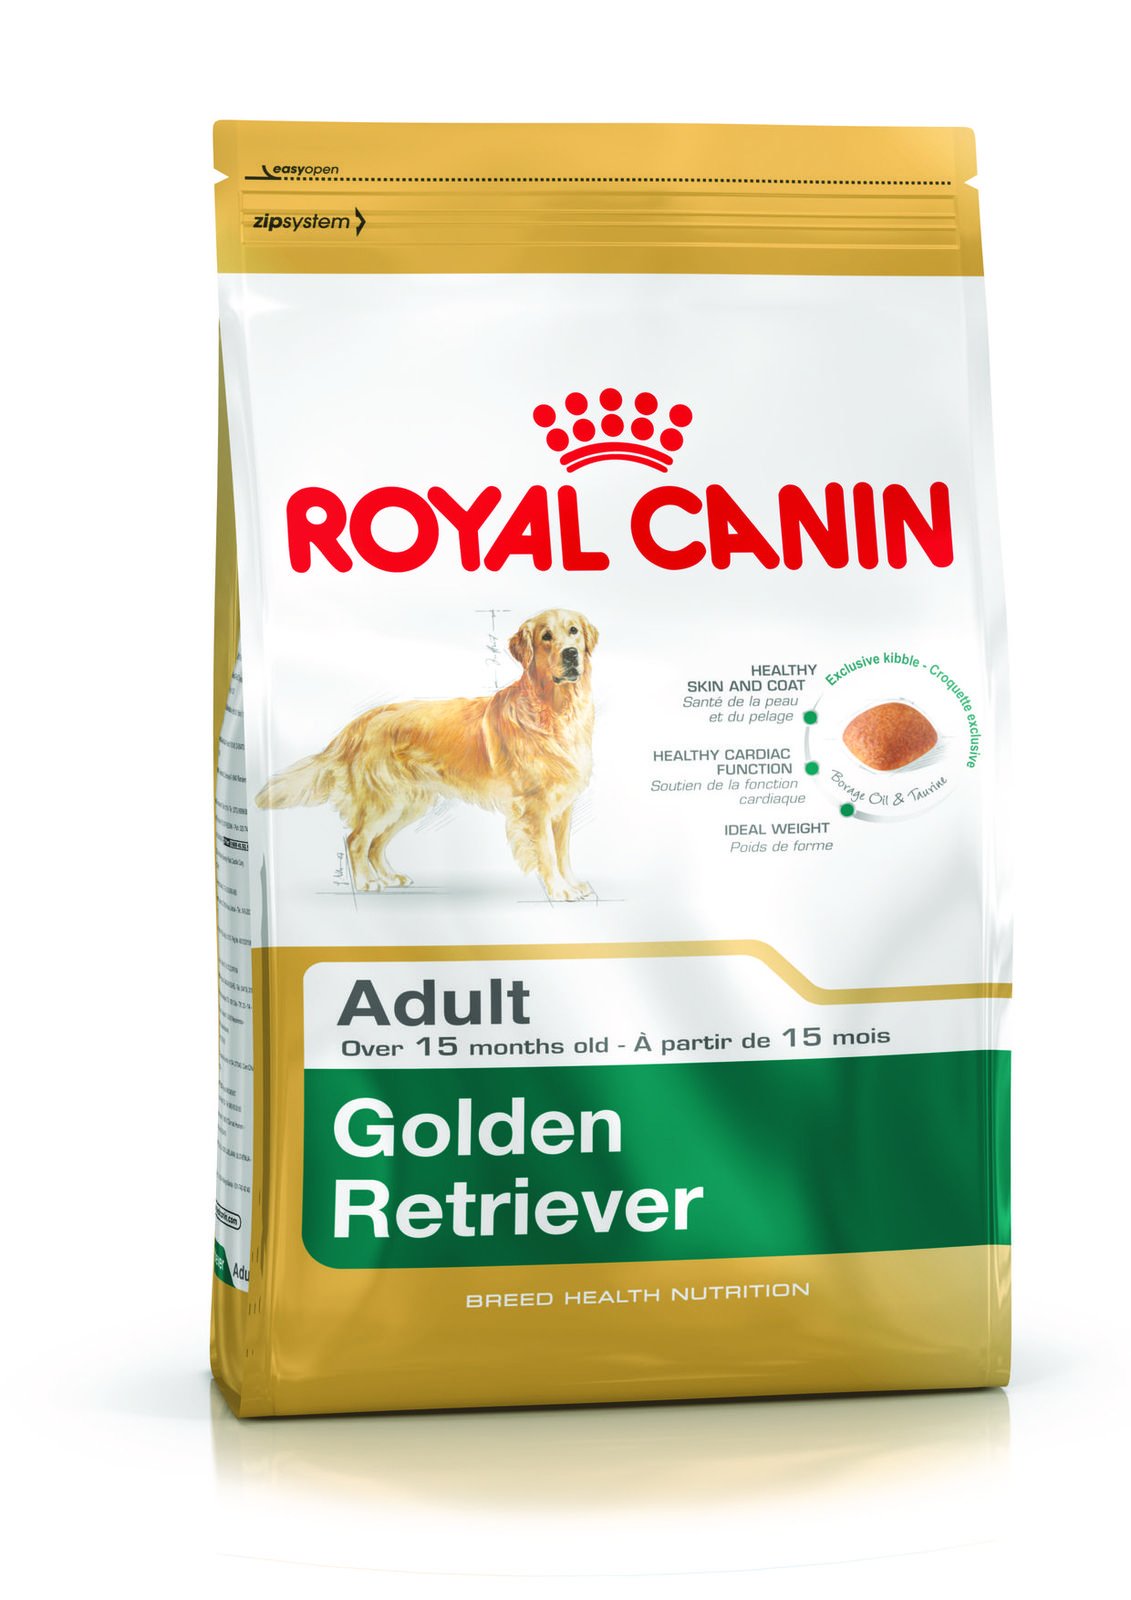 Golden Retriever Adult Helps Support The Skin S Barrier Role Exclusive Complex And Maintain Skin And Coat Health Epa Dha Enriched With Borage Oil